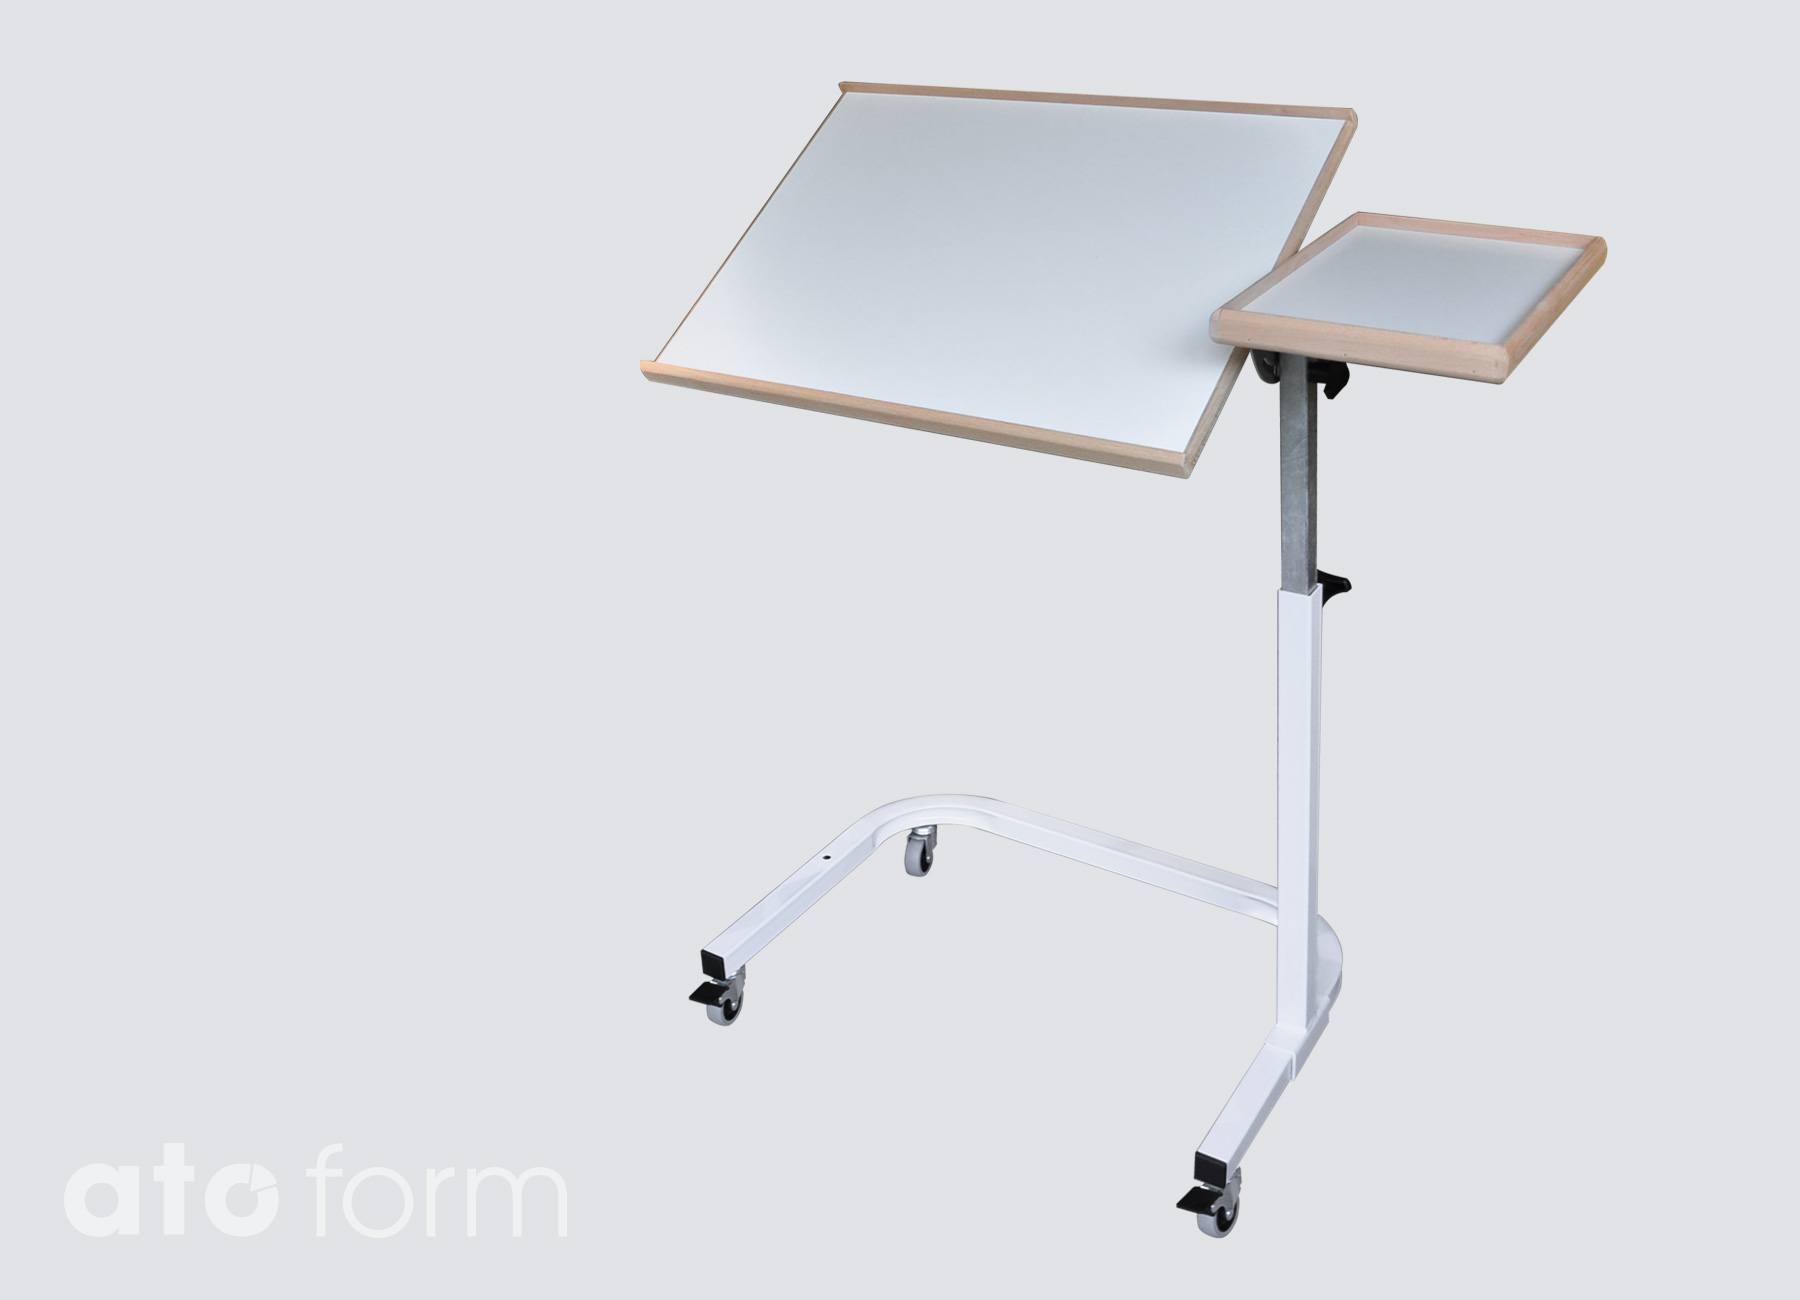 Bed-Table Saale with inclinable tabletop and fixed side-plate.